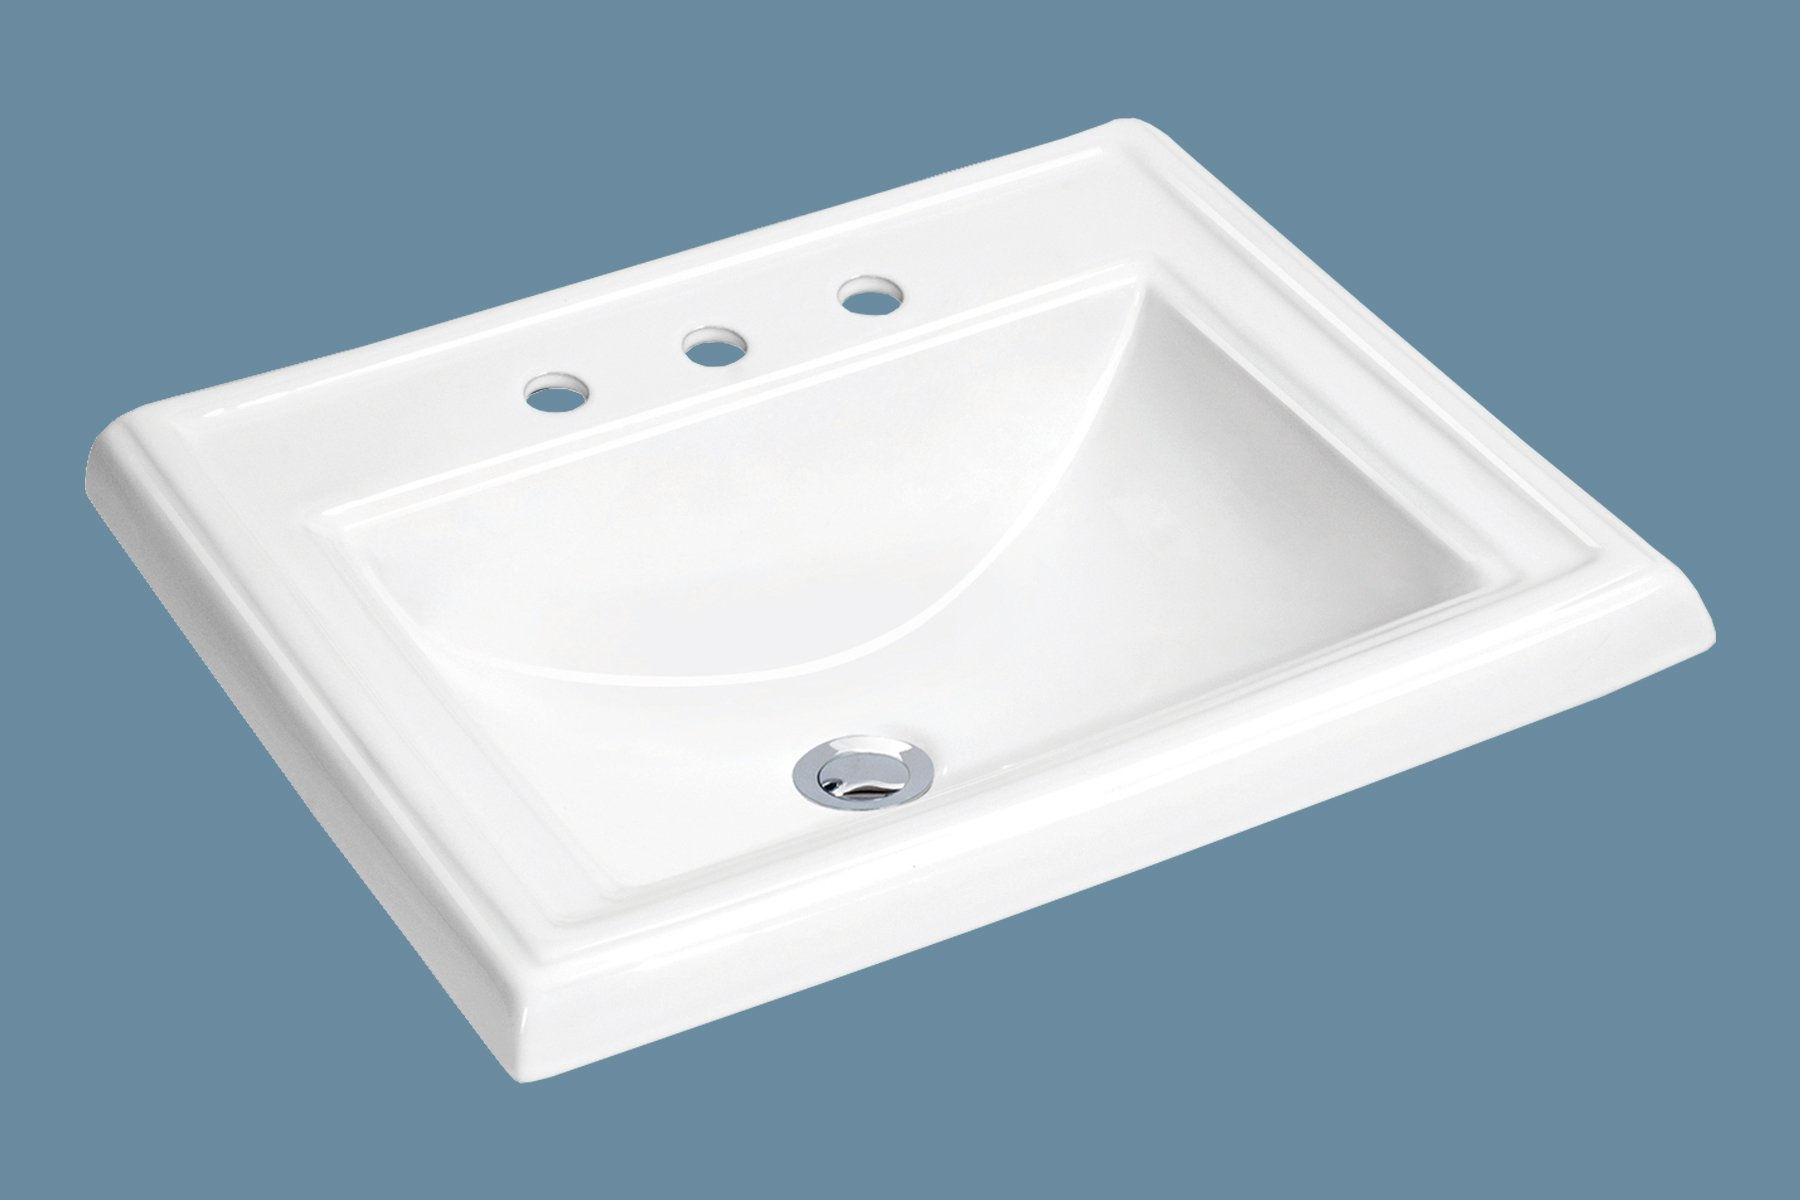 MSCBDP-2318-3W 23'' x 18-1/4'' White Rectangular Porcelain Drop-In Top Mount Bathroom Sink by Magnus Sinks (Image #1)